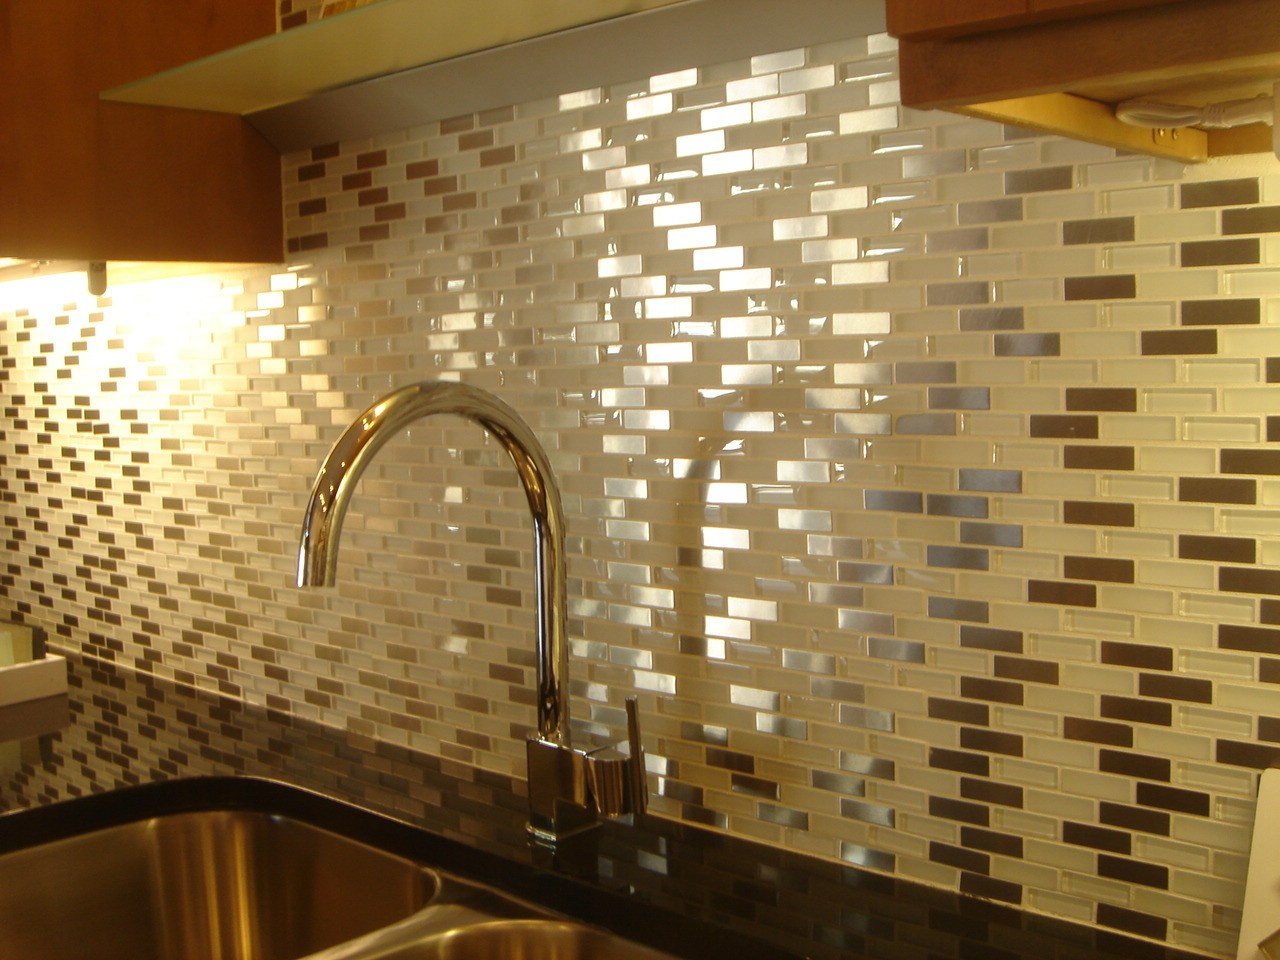 Kitchen wall tiles ideas with images - How to install ceramic tile on wall ...